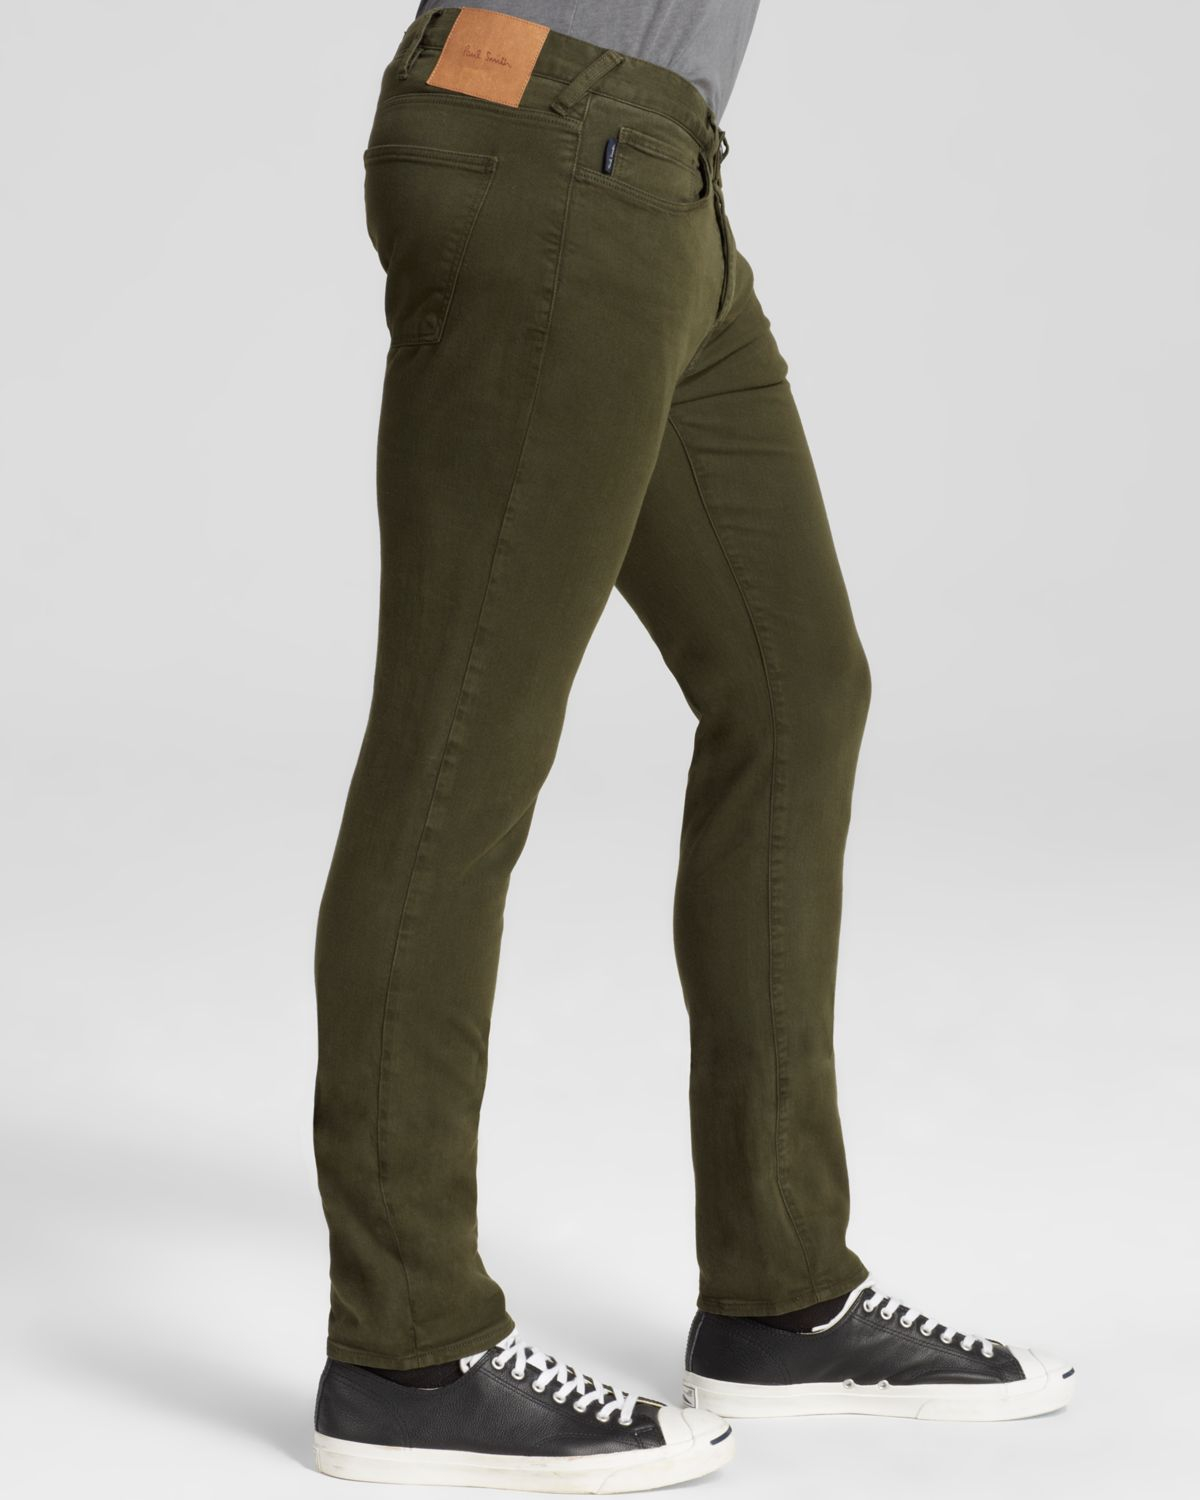 Paul smith Jeans - 5 Pocket Slim Fit In Khaki Green in Green for ...